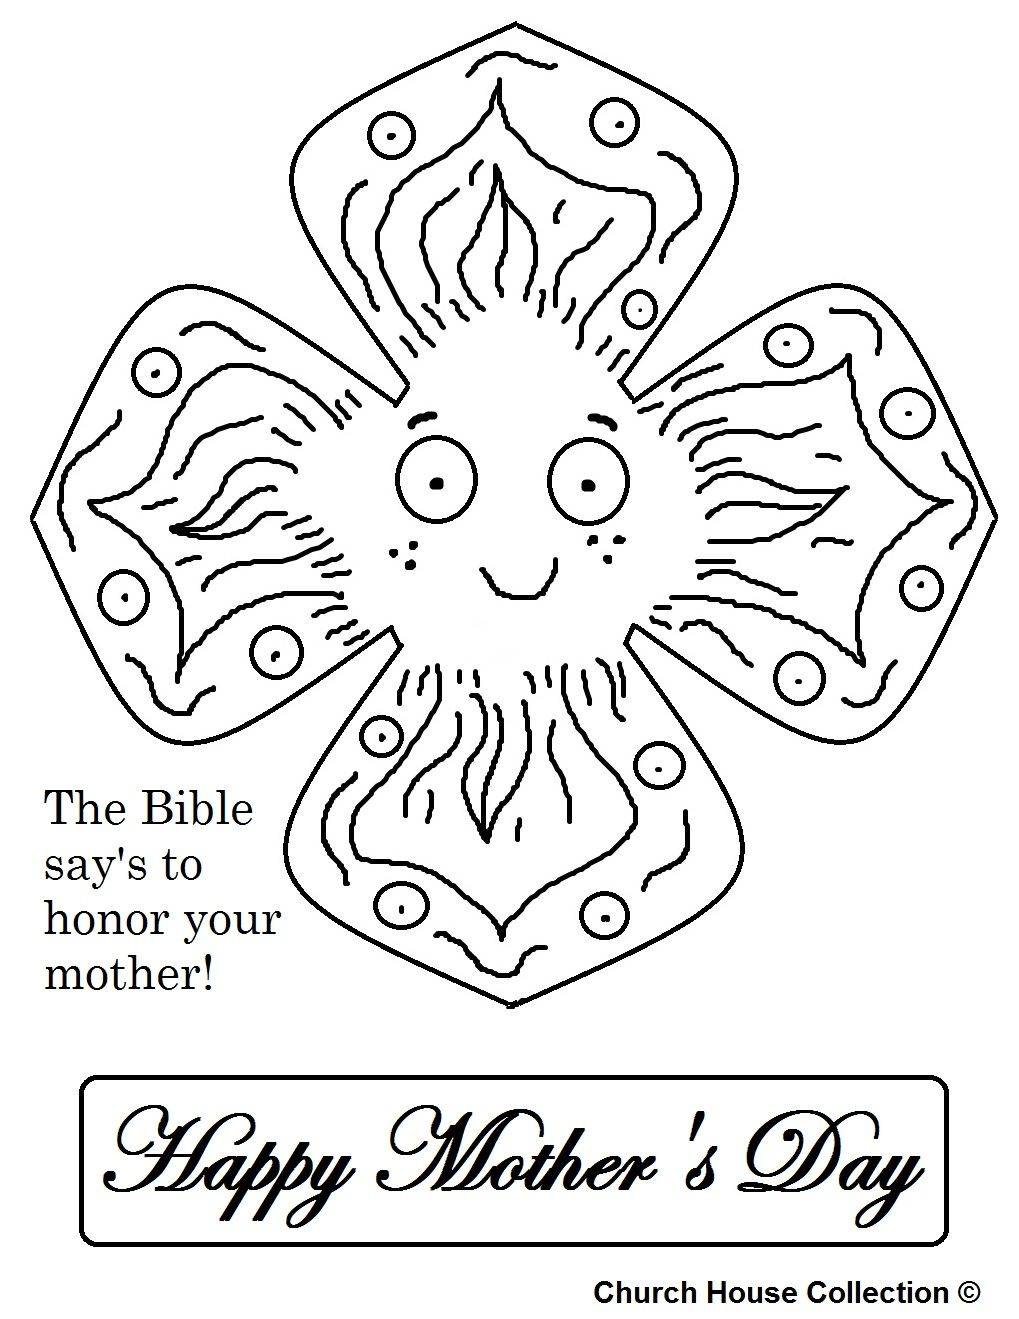 Free coloring pages christian - Sunday School Coloring Pages Bible Lesson Coloring Page Sheets Sunday School Give Kootation